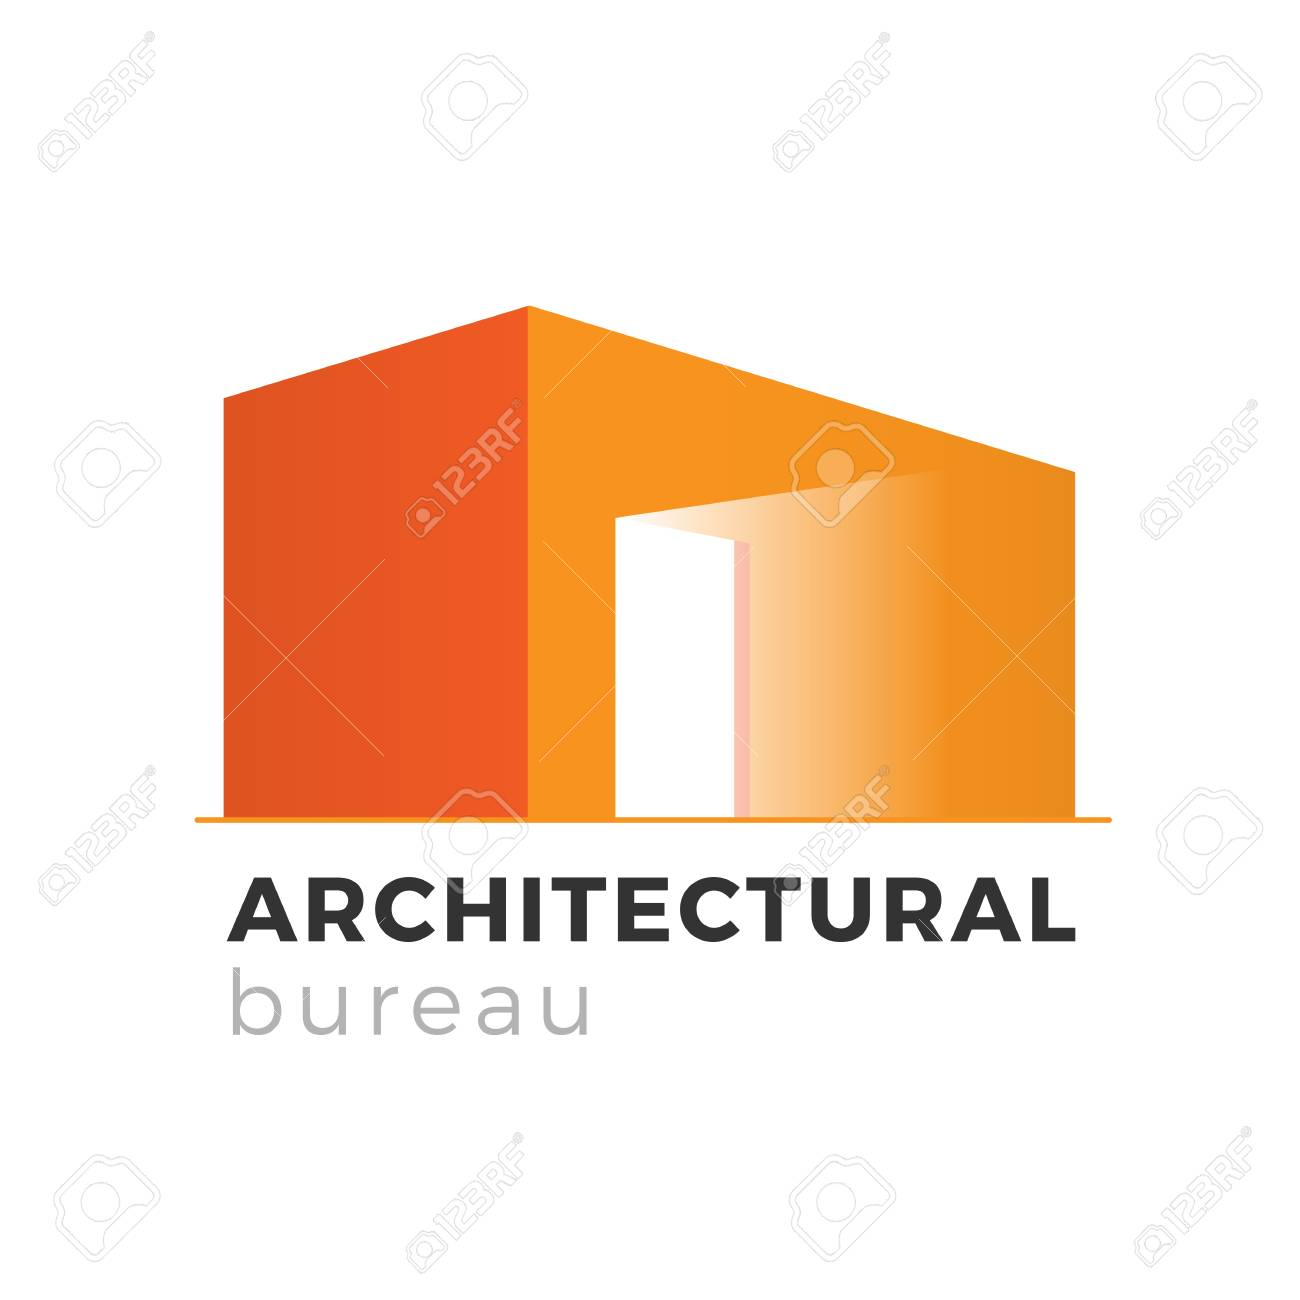 Architecture Realty Or Construction Company Logo Design Concept